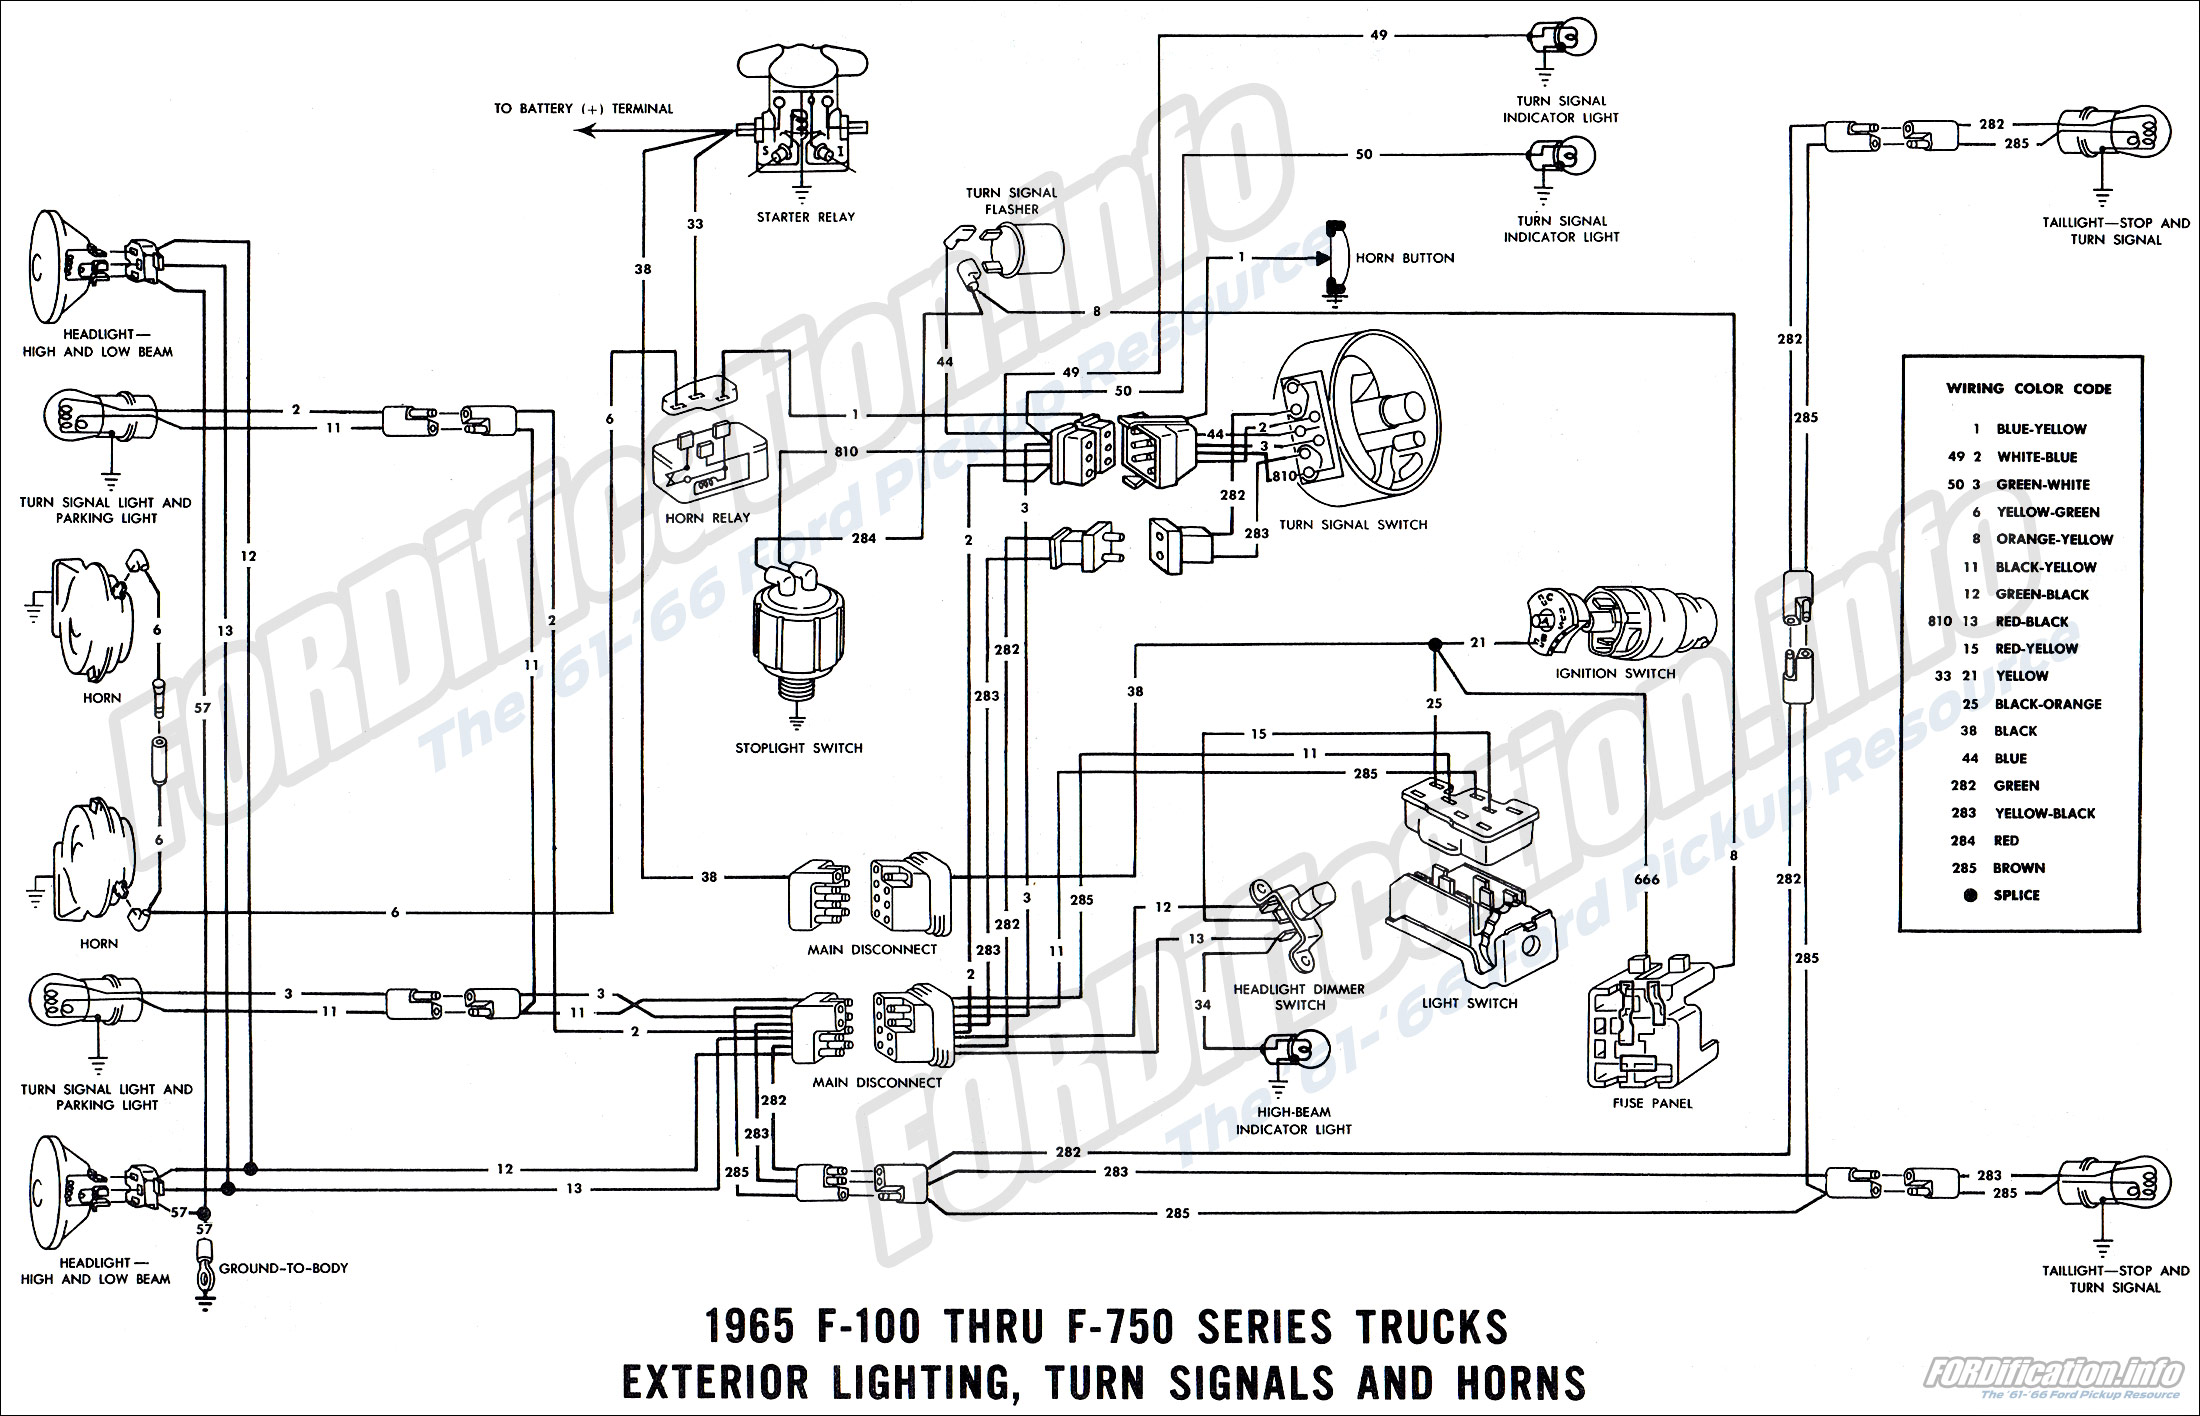 ford f100 truck wiring diagrams wiring diagram document guide1965 ford  truck wiring diagrams fordification info the